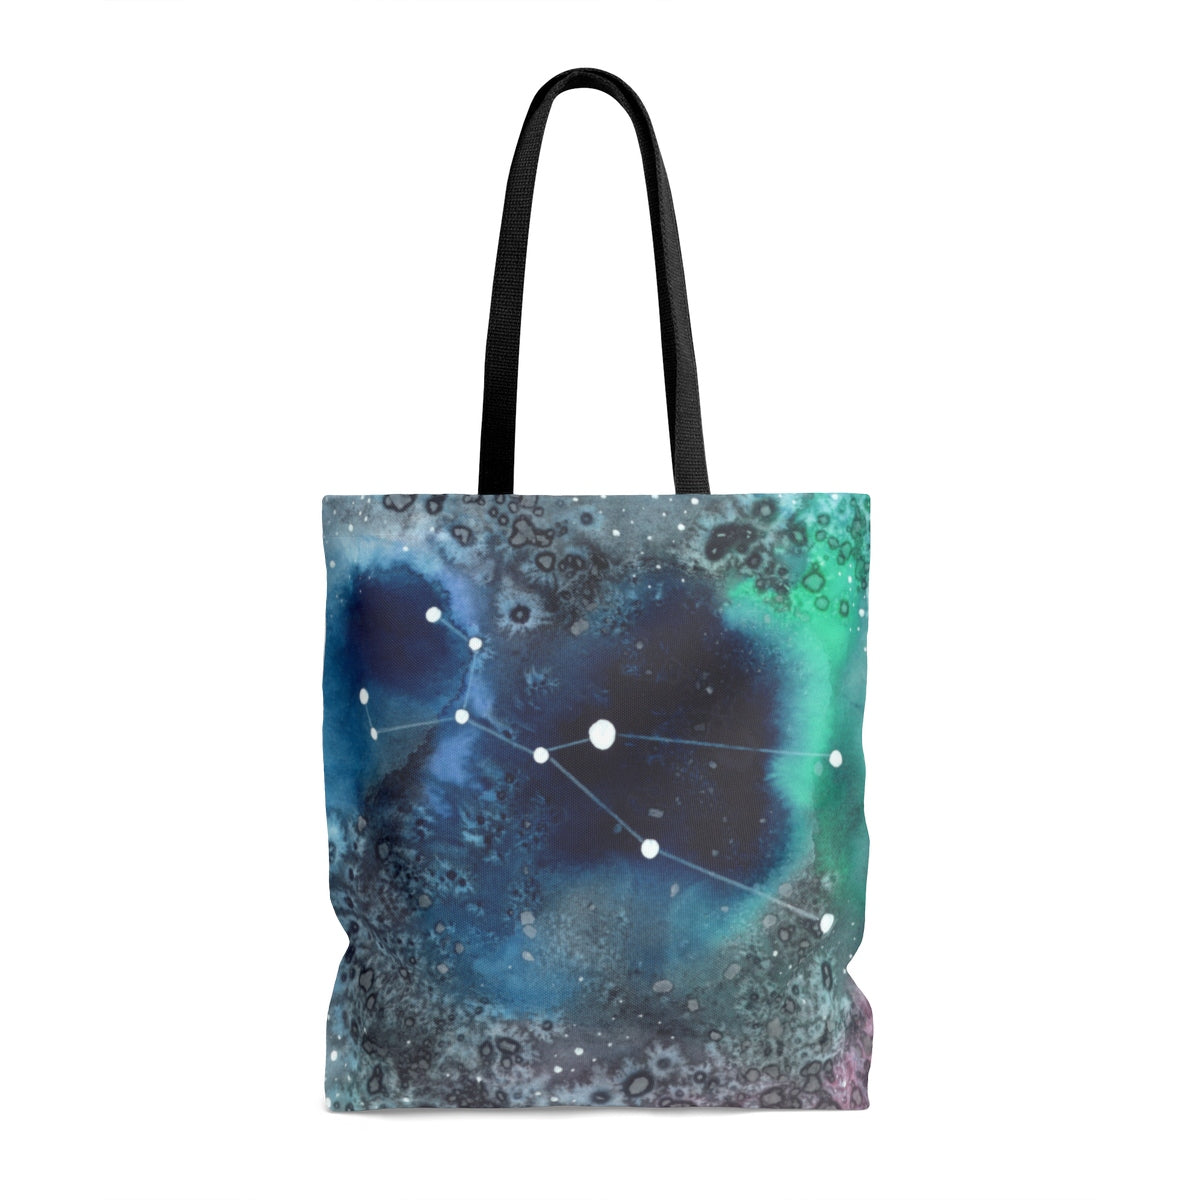 TAURUS  Tote Bag, Bags - Gravitational Pull Art